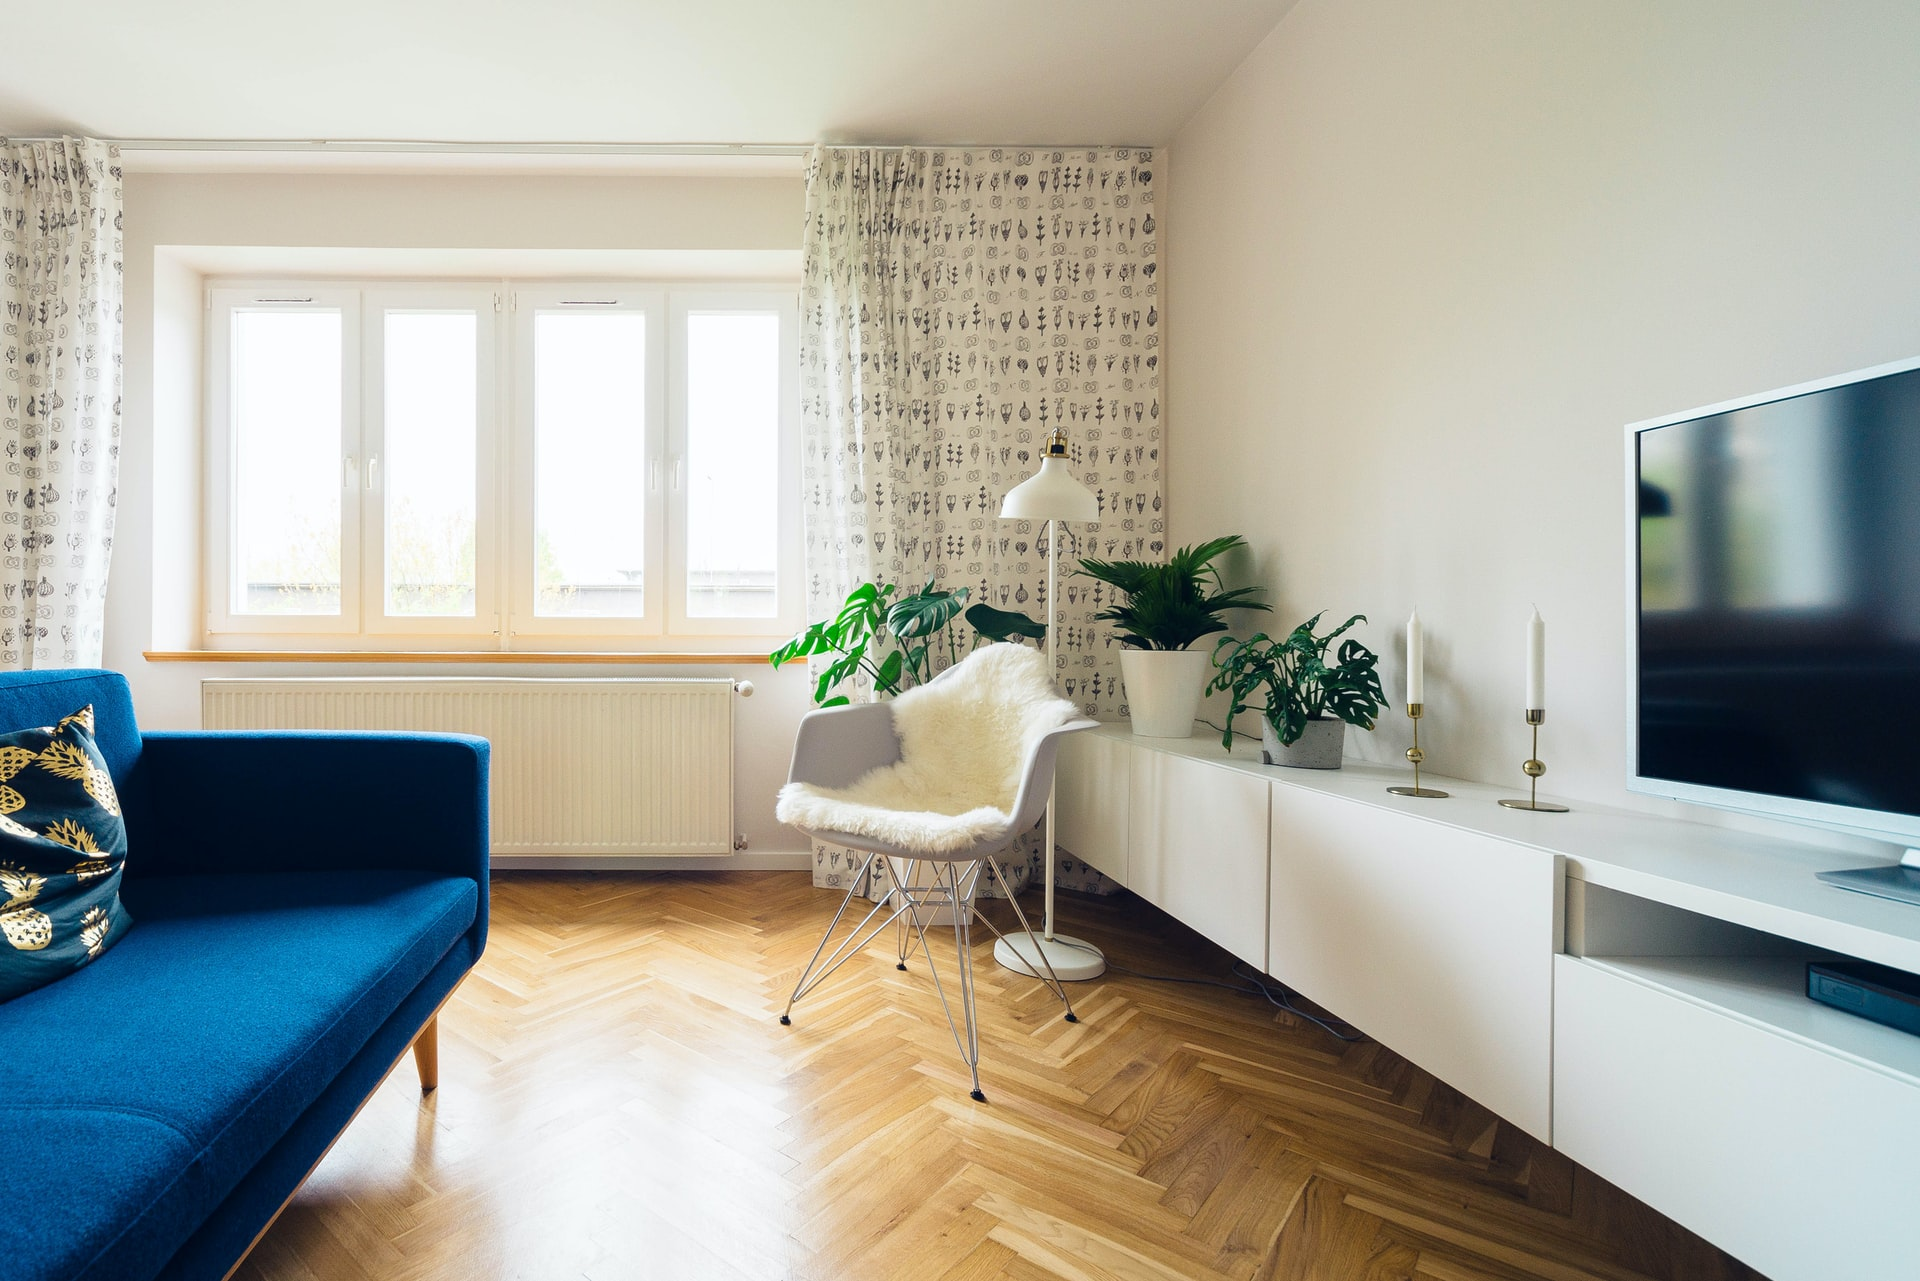 How Improving Indoor Air Quality Can Help Your Skin